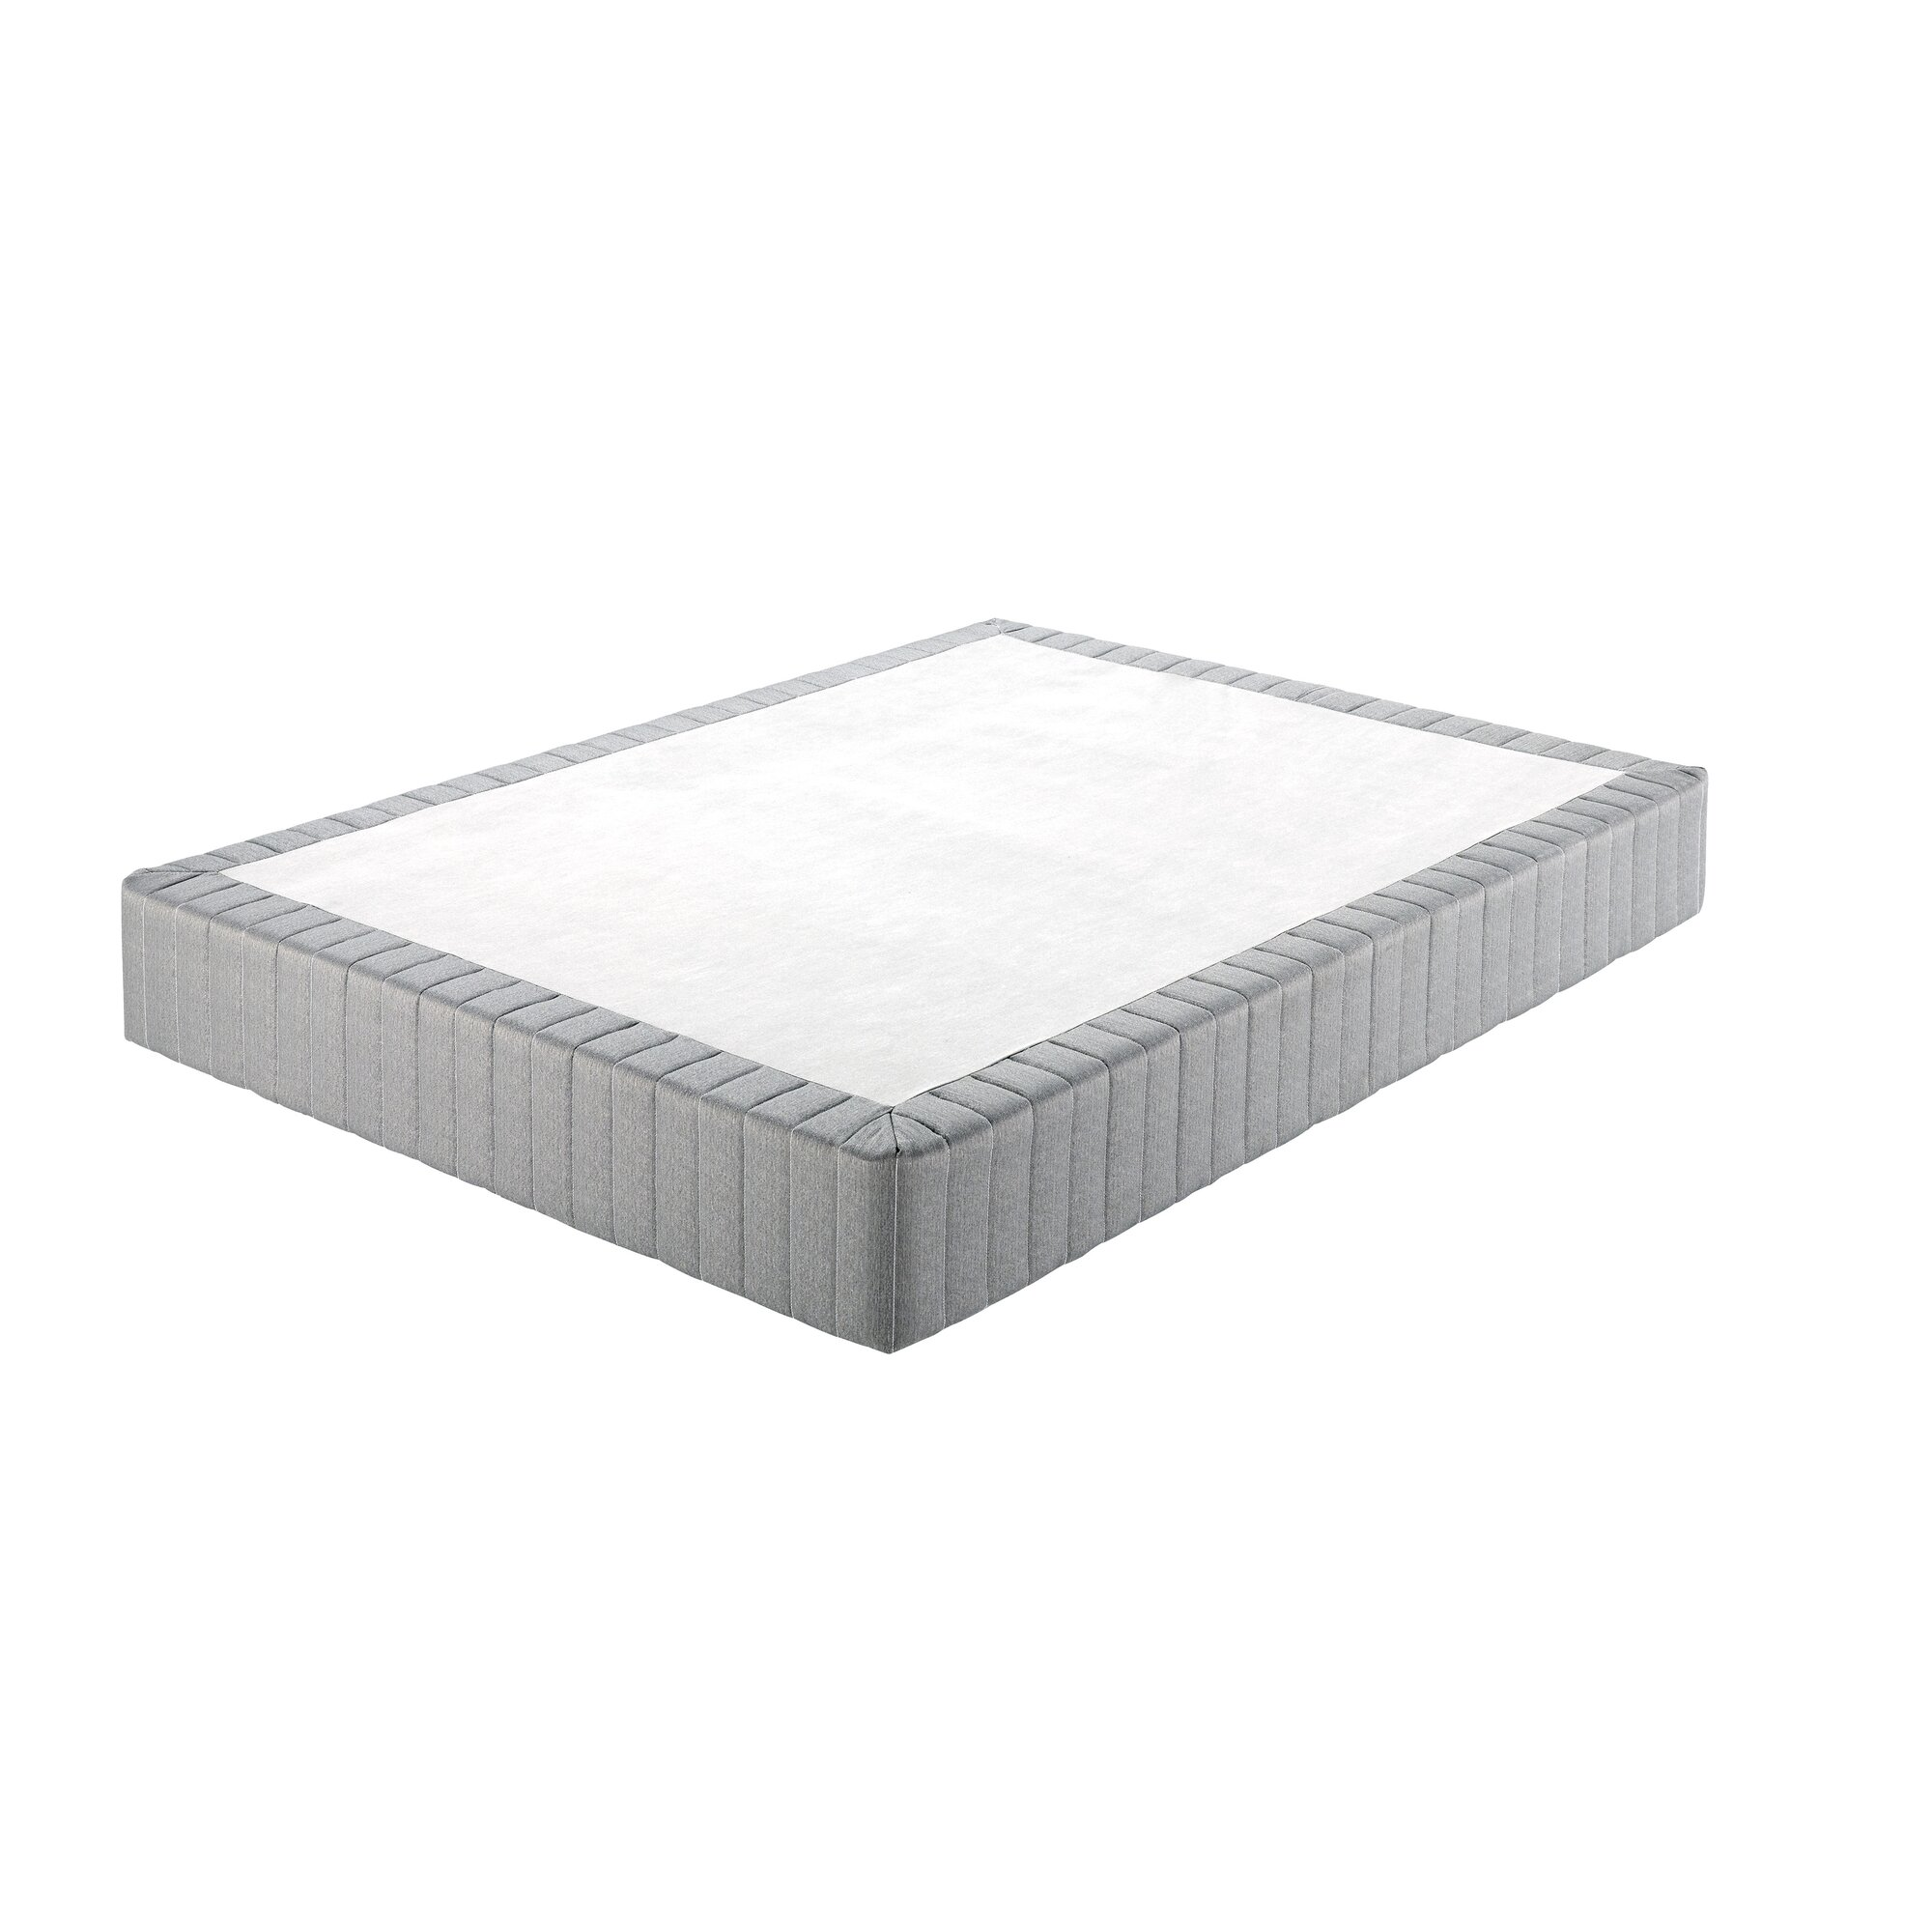 King Mattress In A Box Comments Post A Comment Ask A